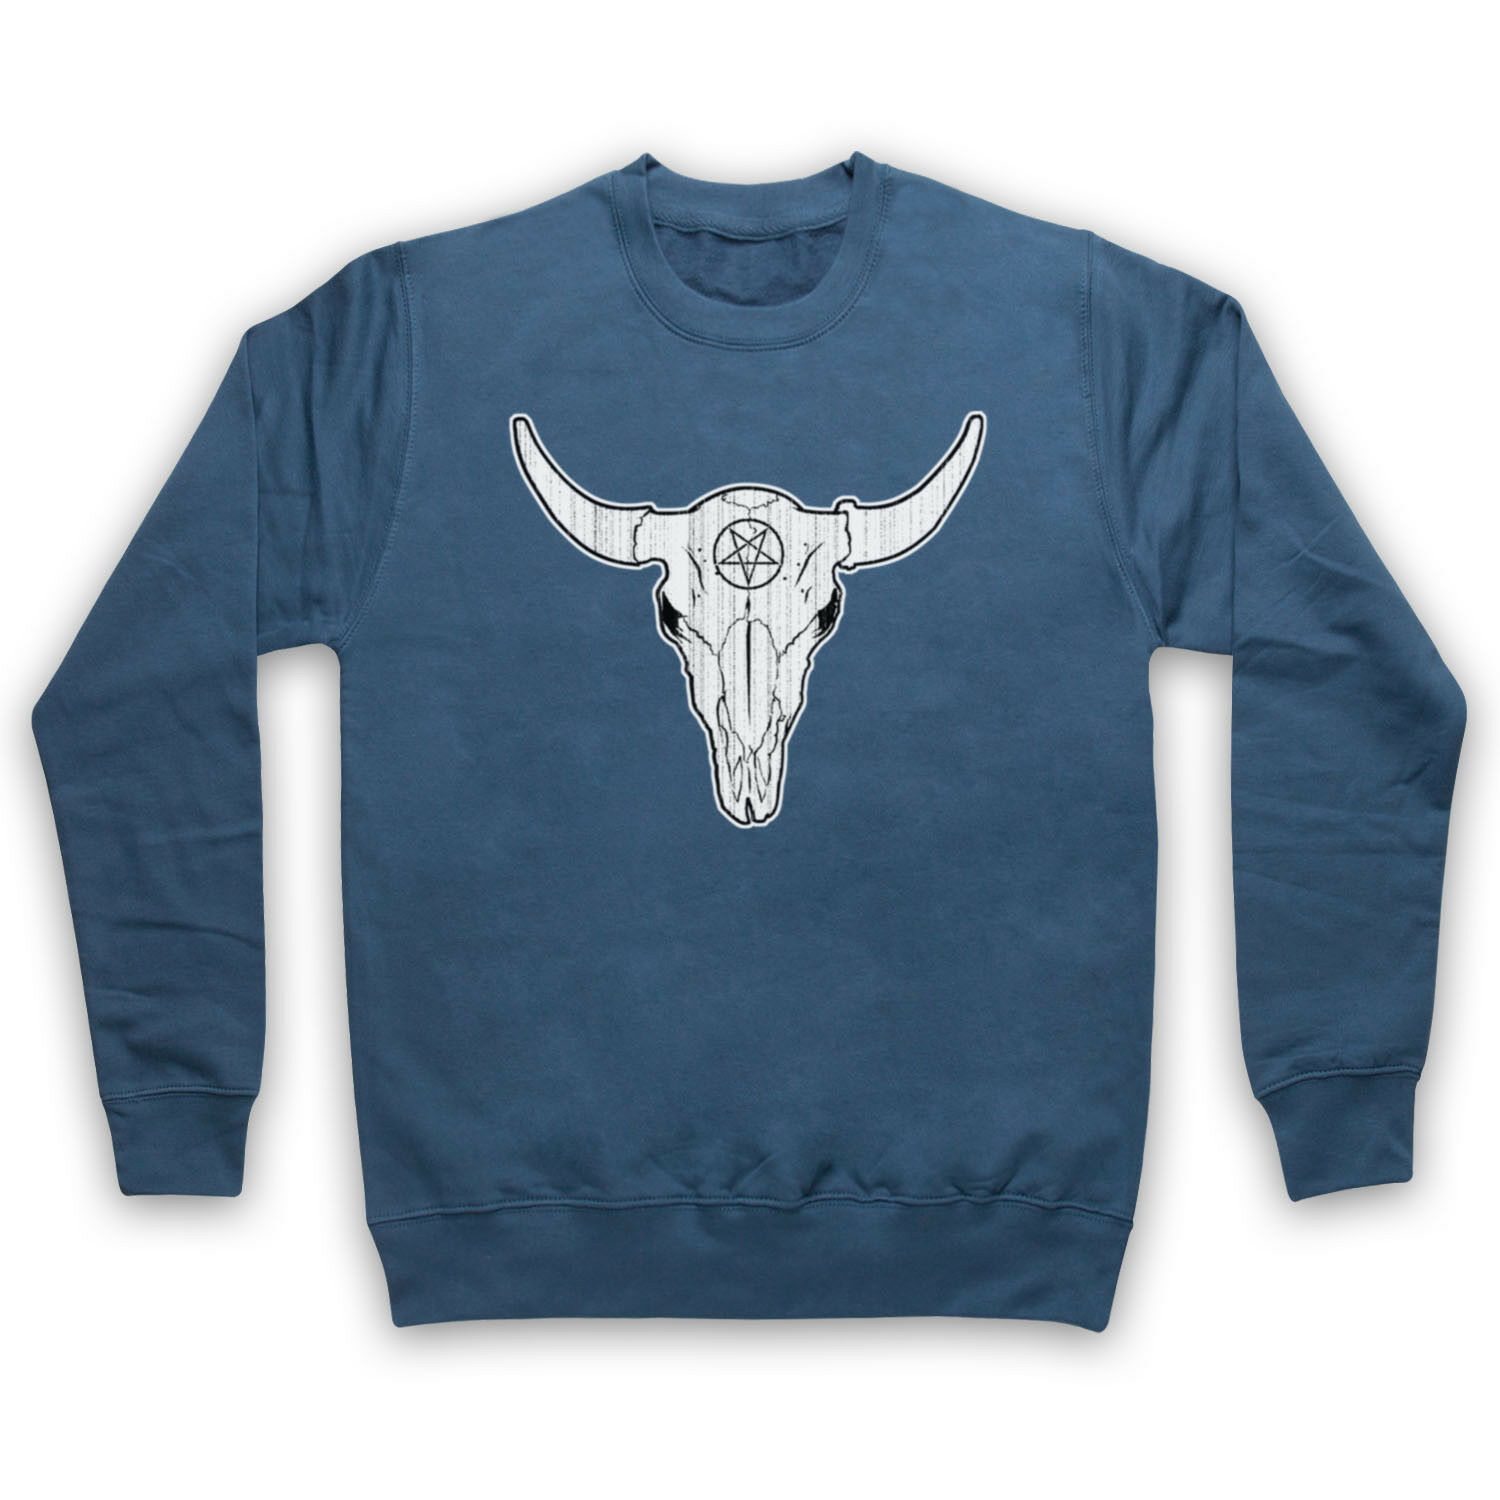 BUFFALO SKULL GOTHIC ILLUSTRATION HORROR PENTAGRAM ADULTS KIDS SWEATSHIRT